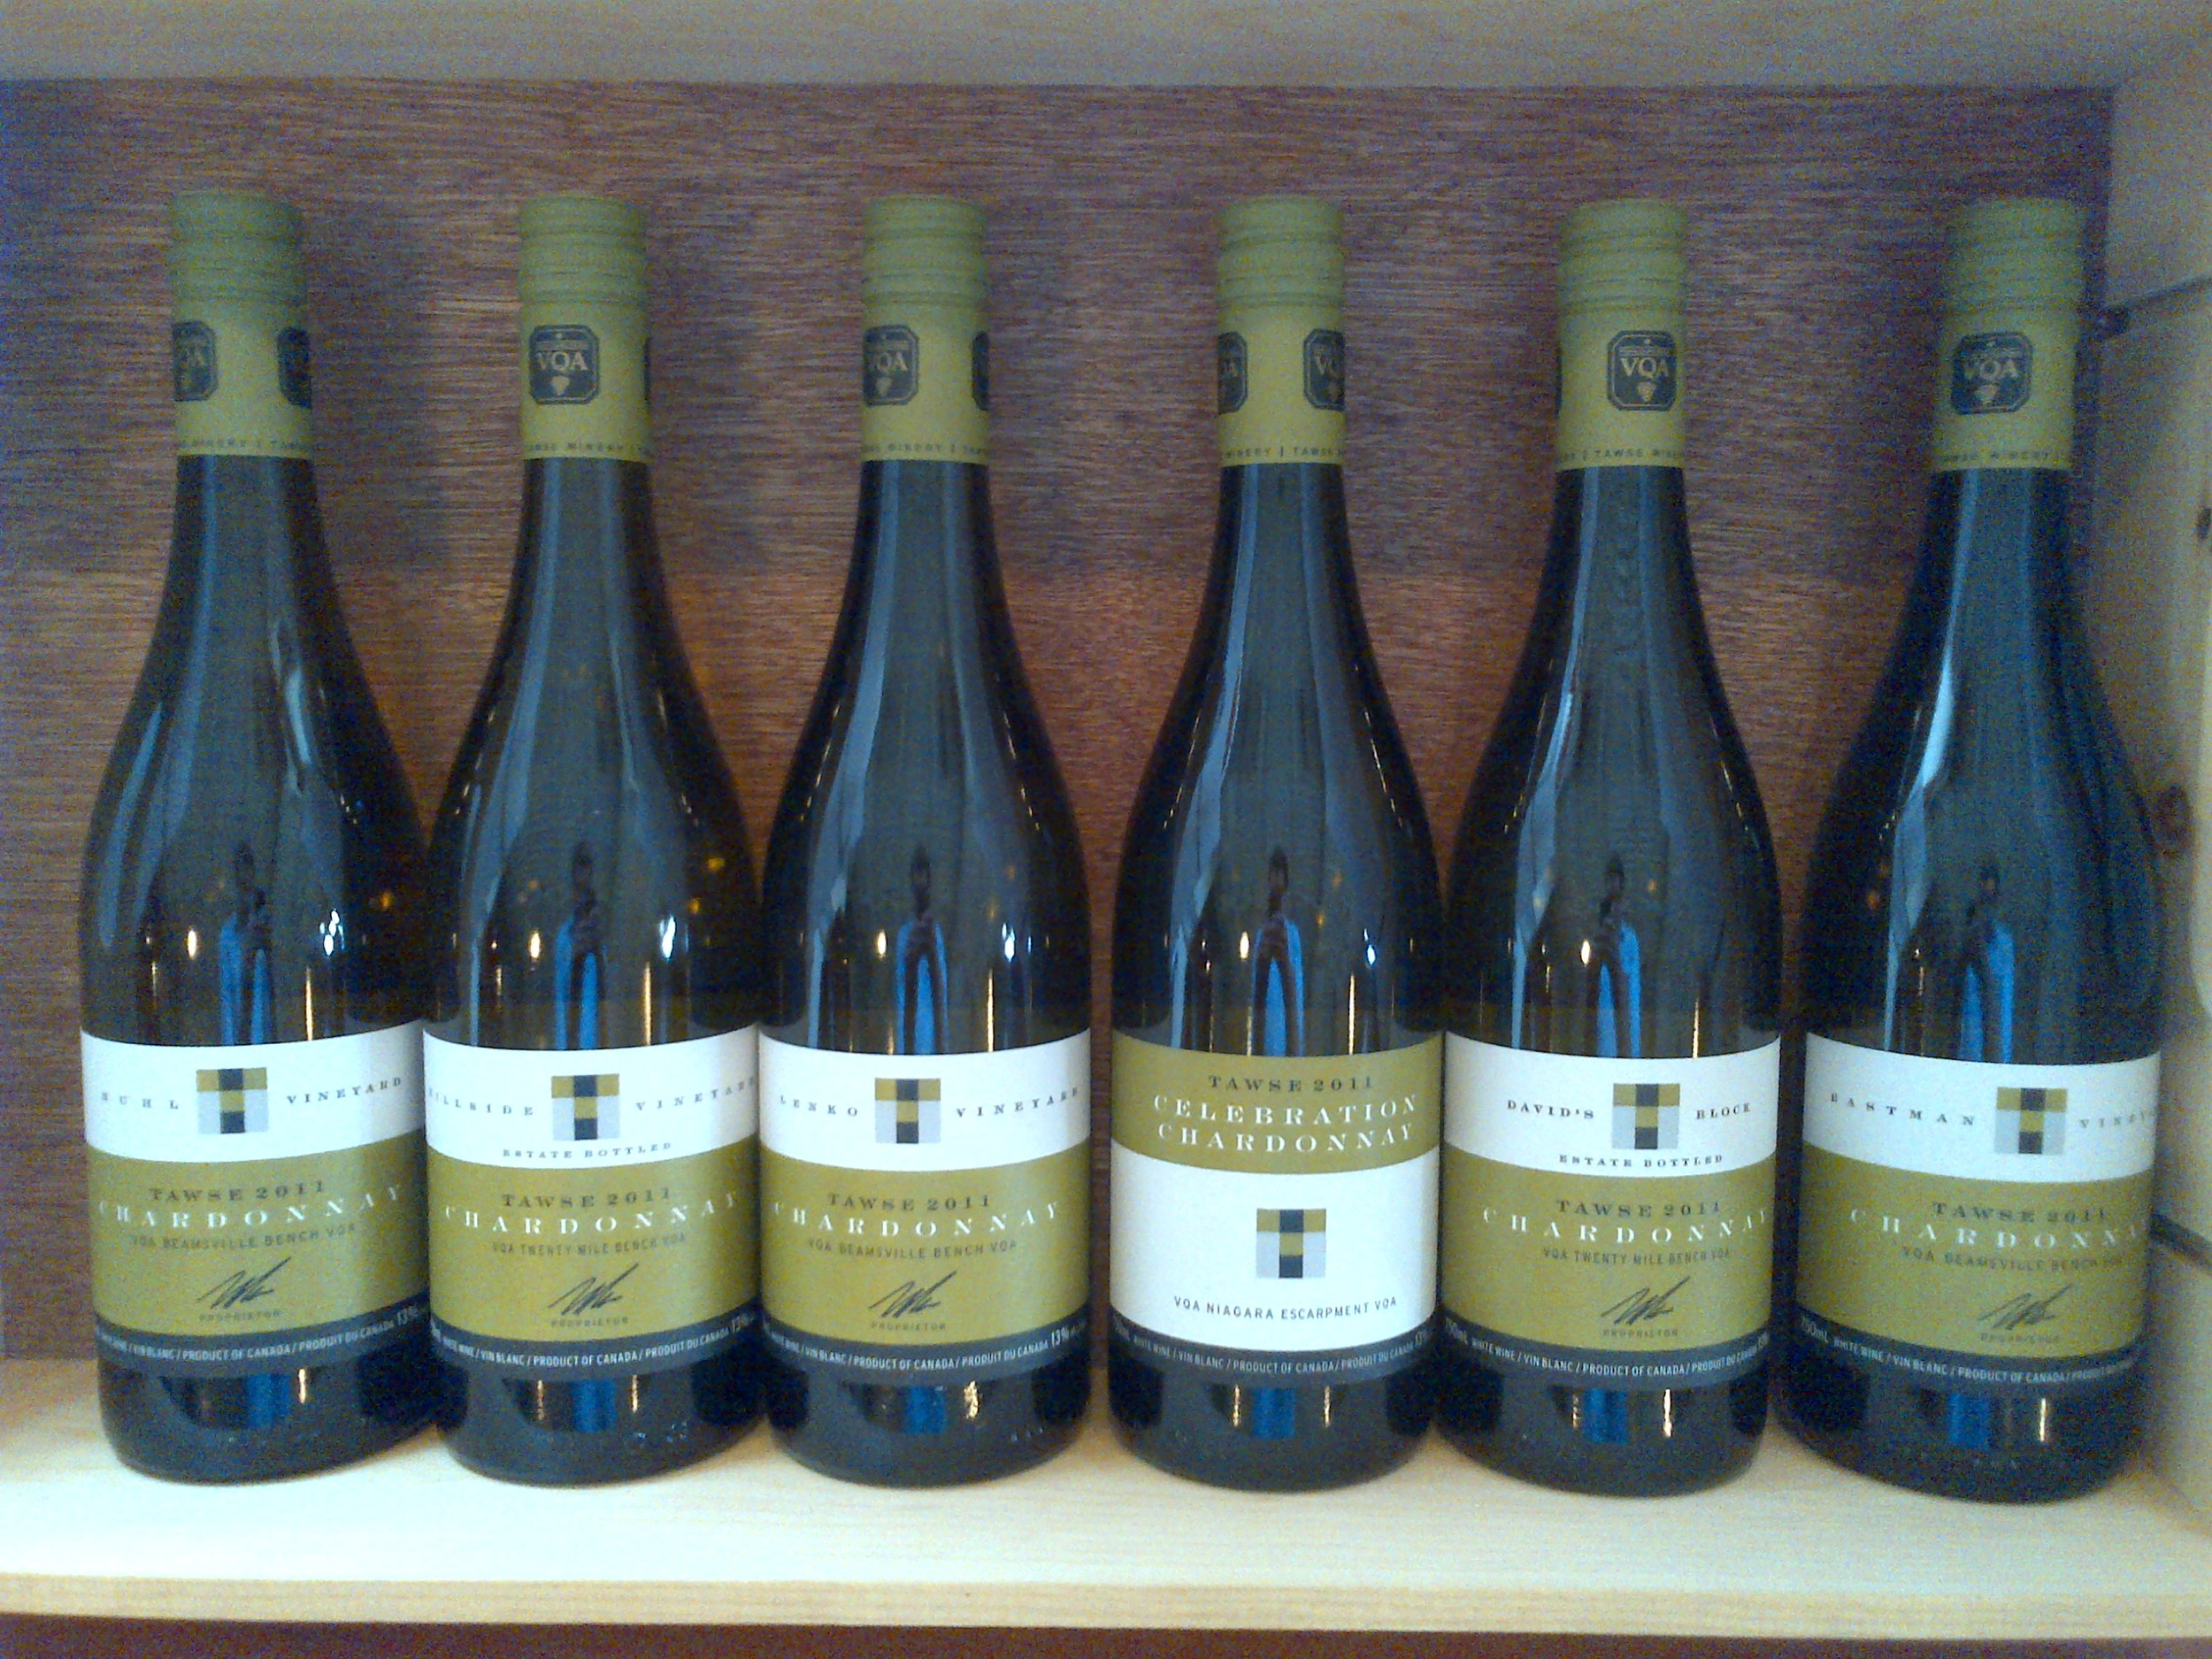 Limited addition Chardonnays, in celebration of i4c at Tawse tasting room.